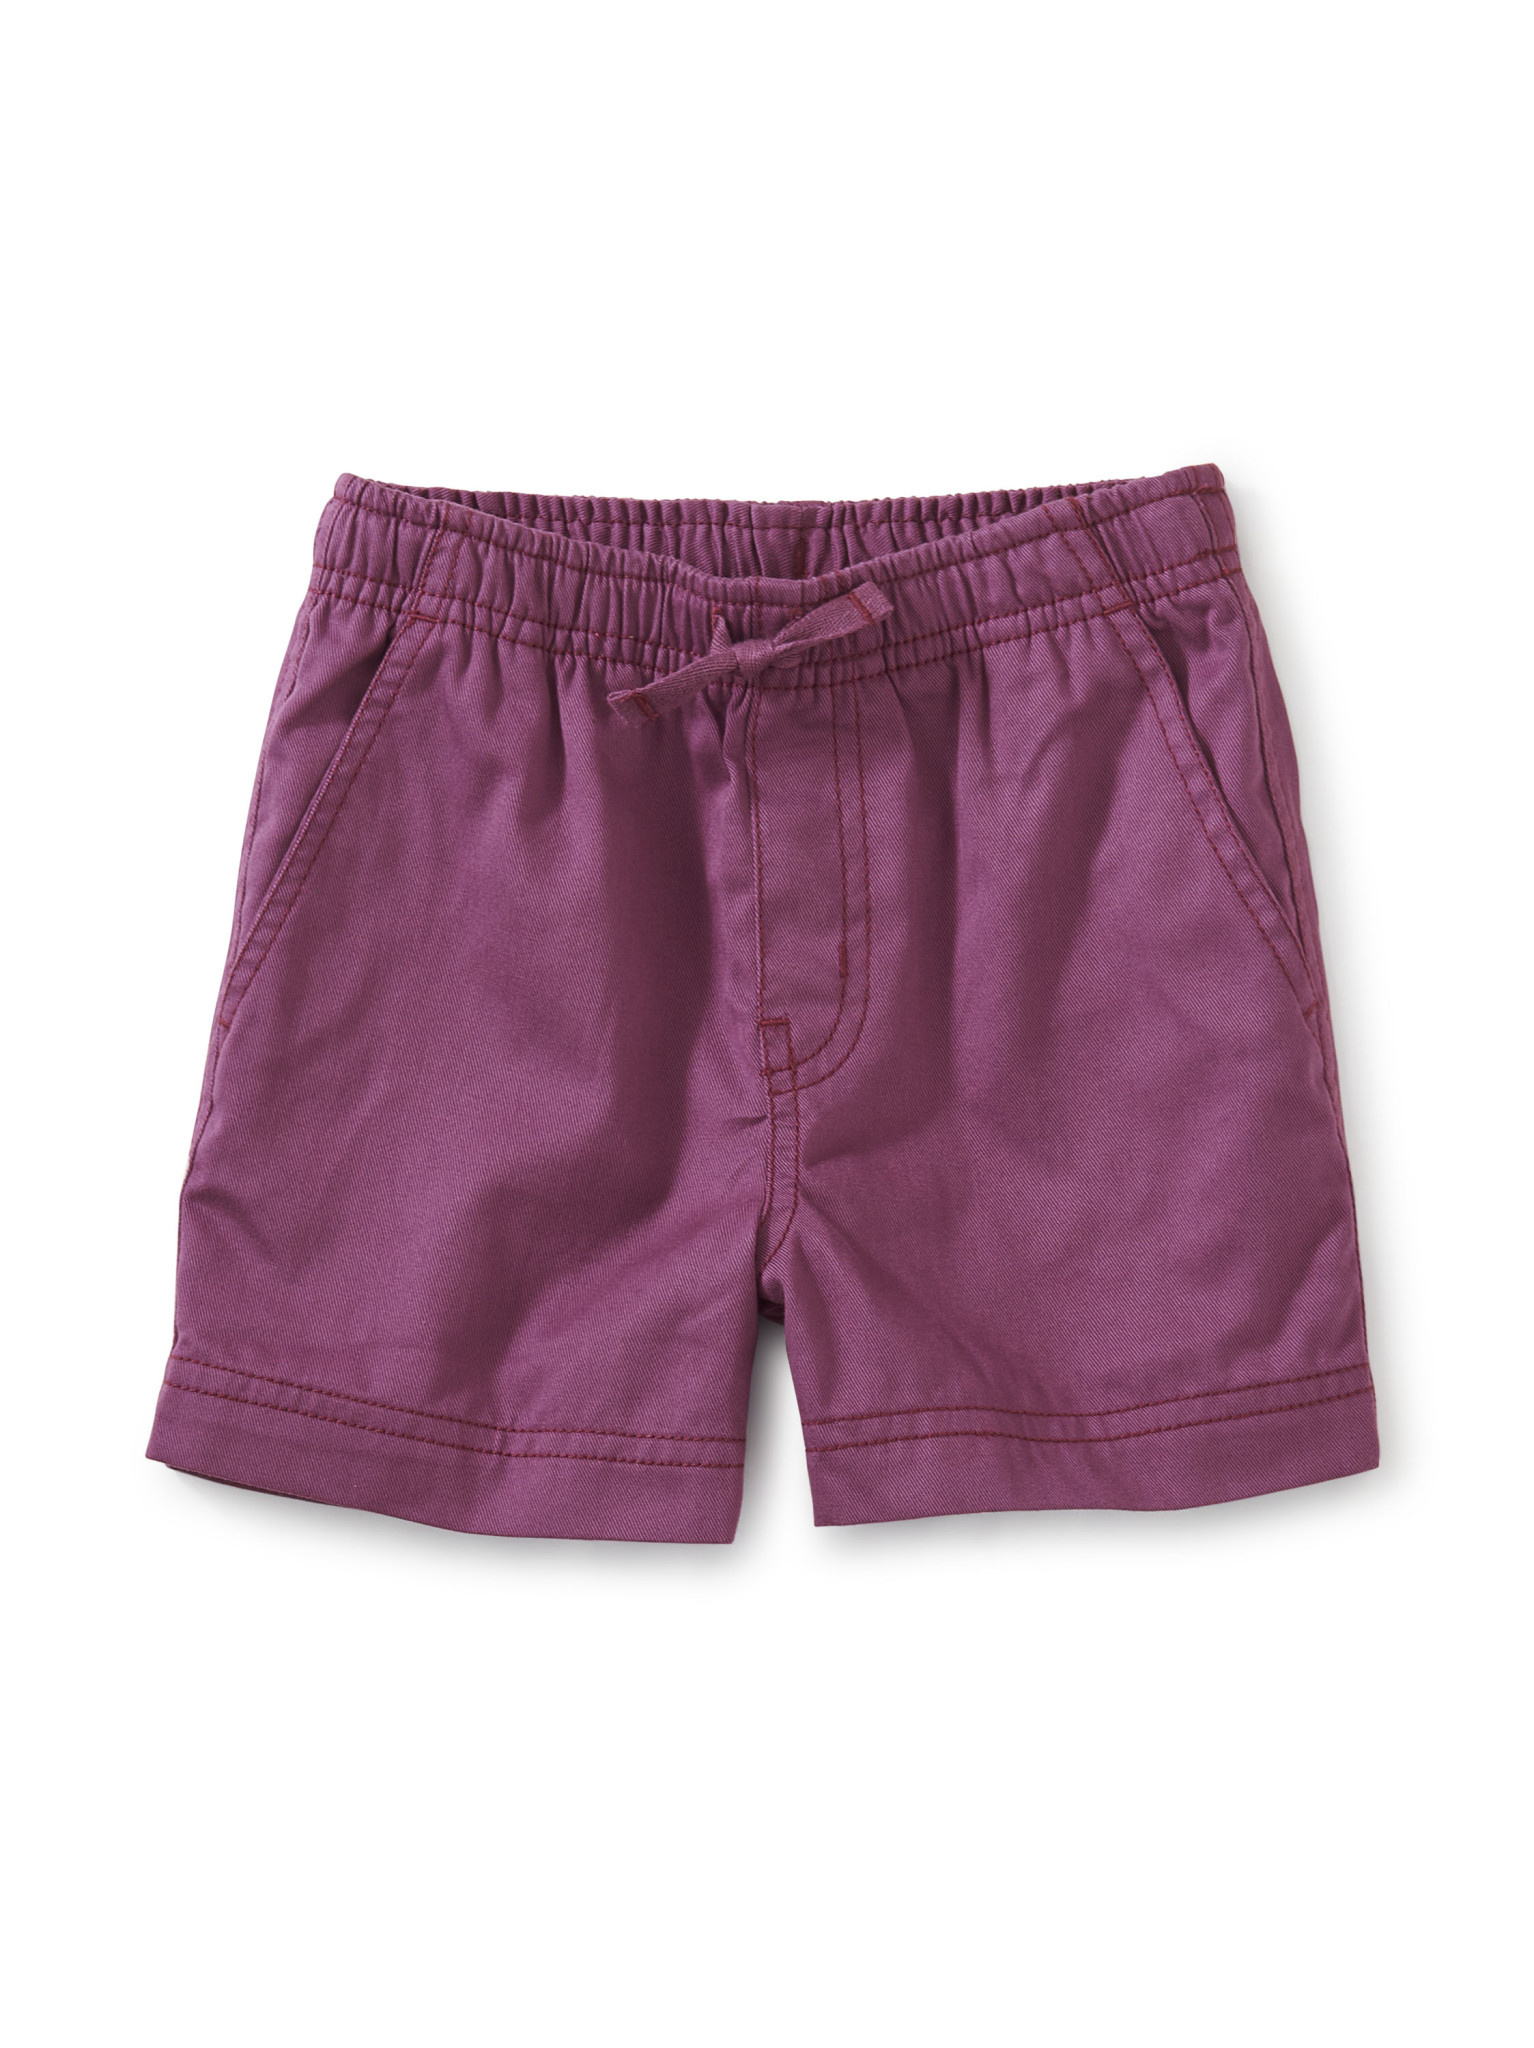 Tea Collection Twill Sport Shorts- Cassis